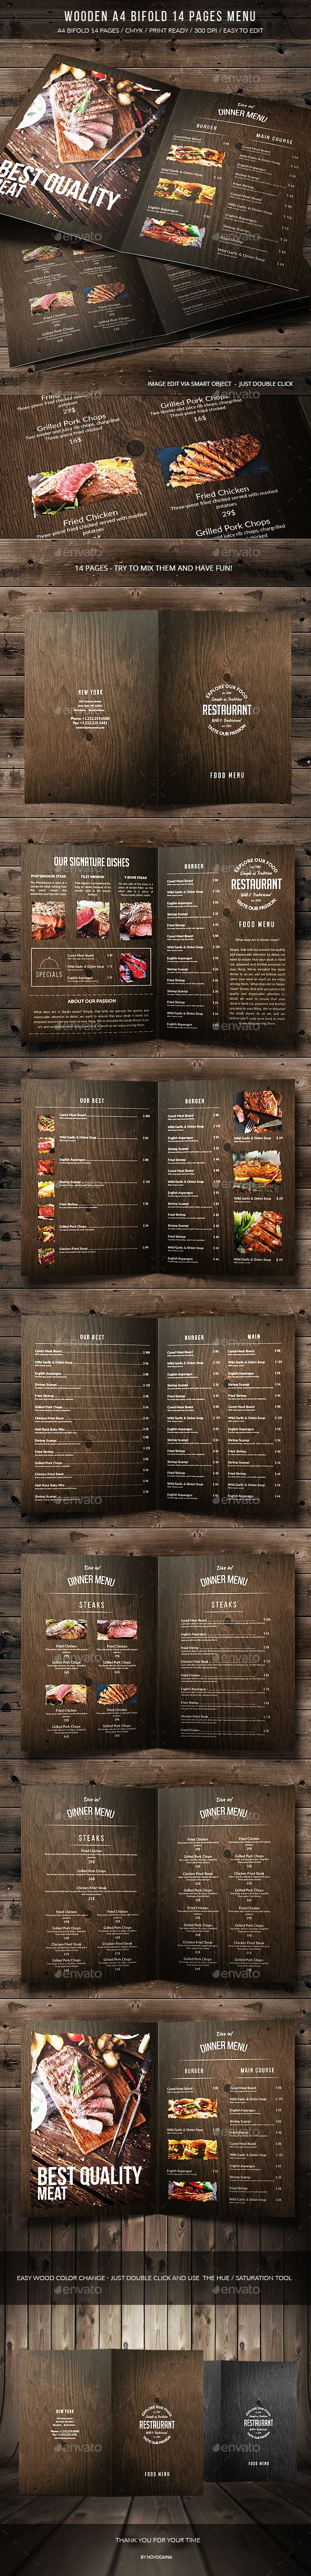 Wooden A4 Bifold 14 Pages Menu — Photoshop PSD #print template #restaurant • Available here → https://graphicriver.net/item/wooden-a4-bifold-14-pages-menu/17415665?ref=pxcr